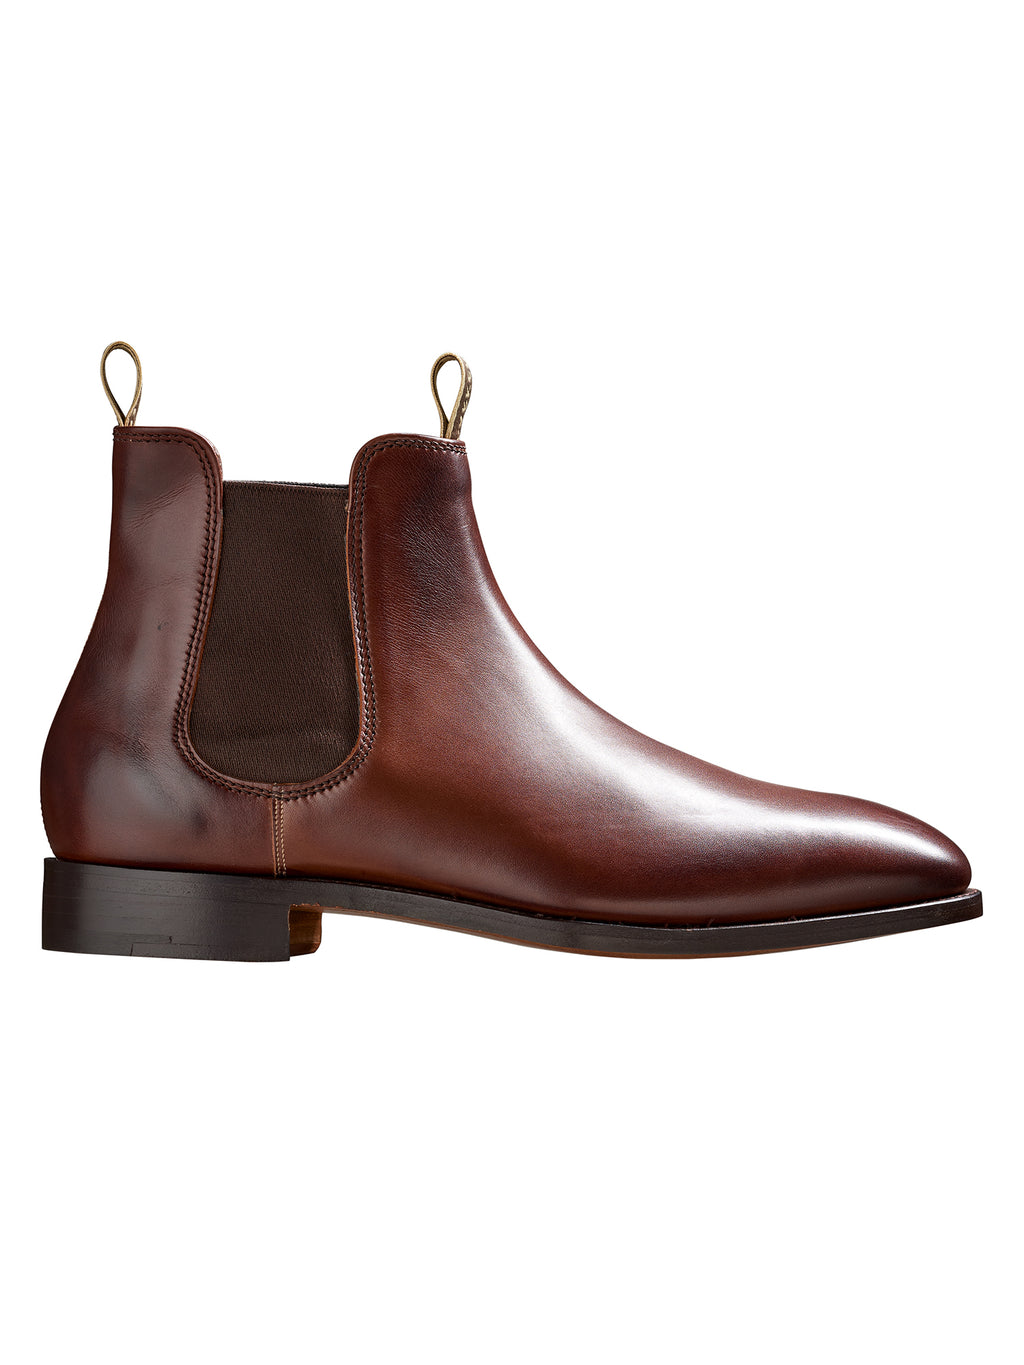 chelsea boot from barker shoes in a walnut calf colour